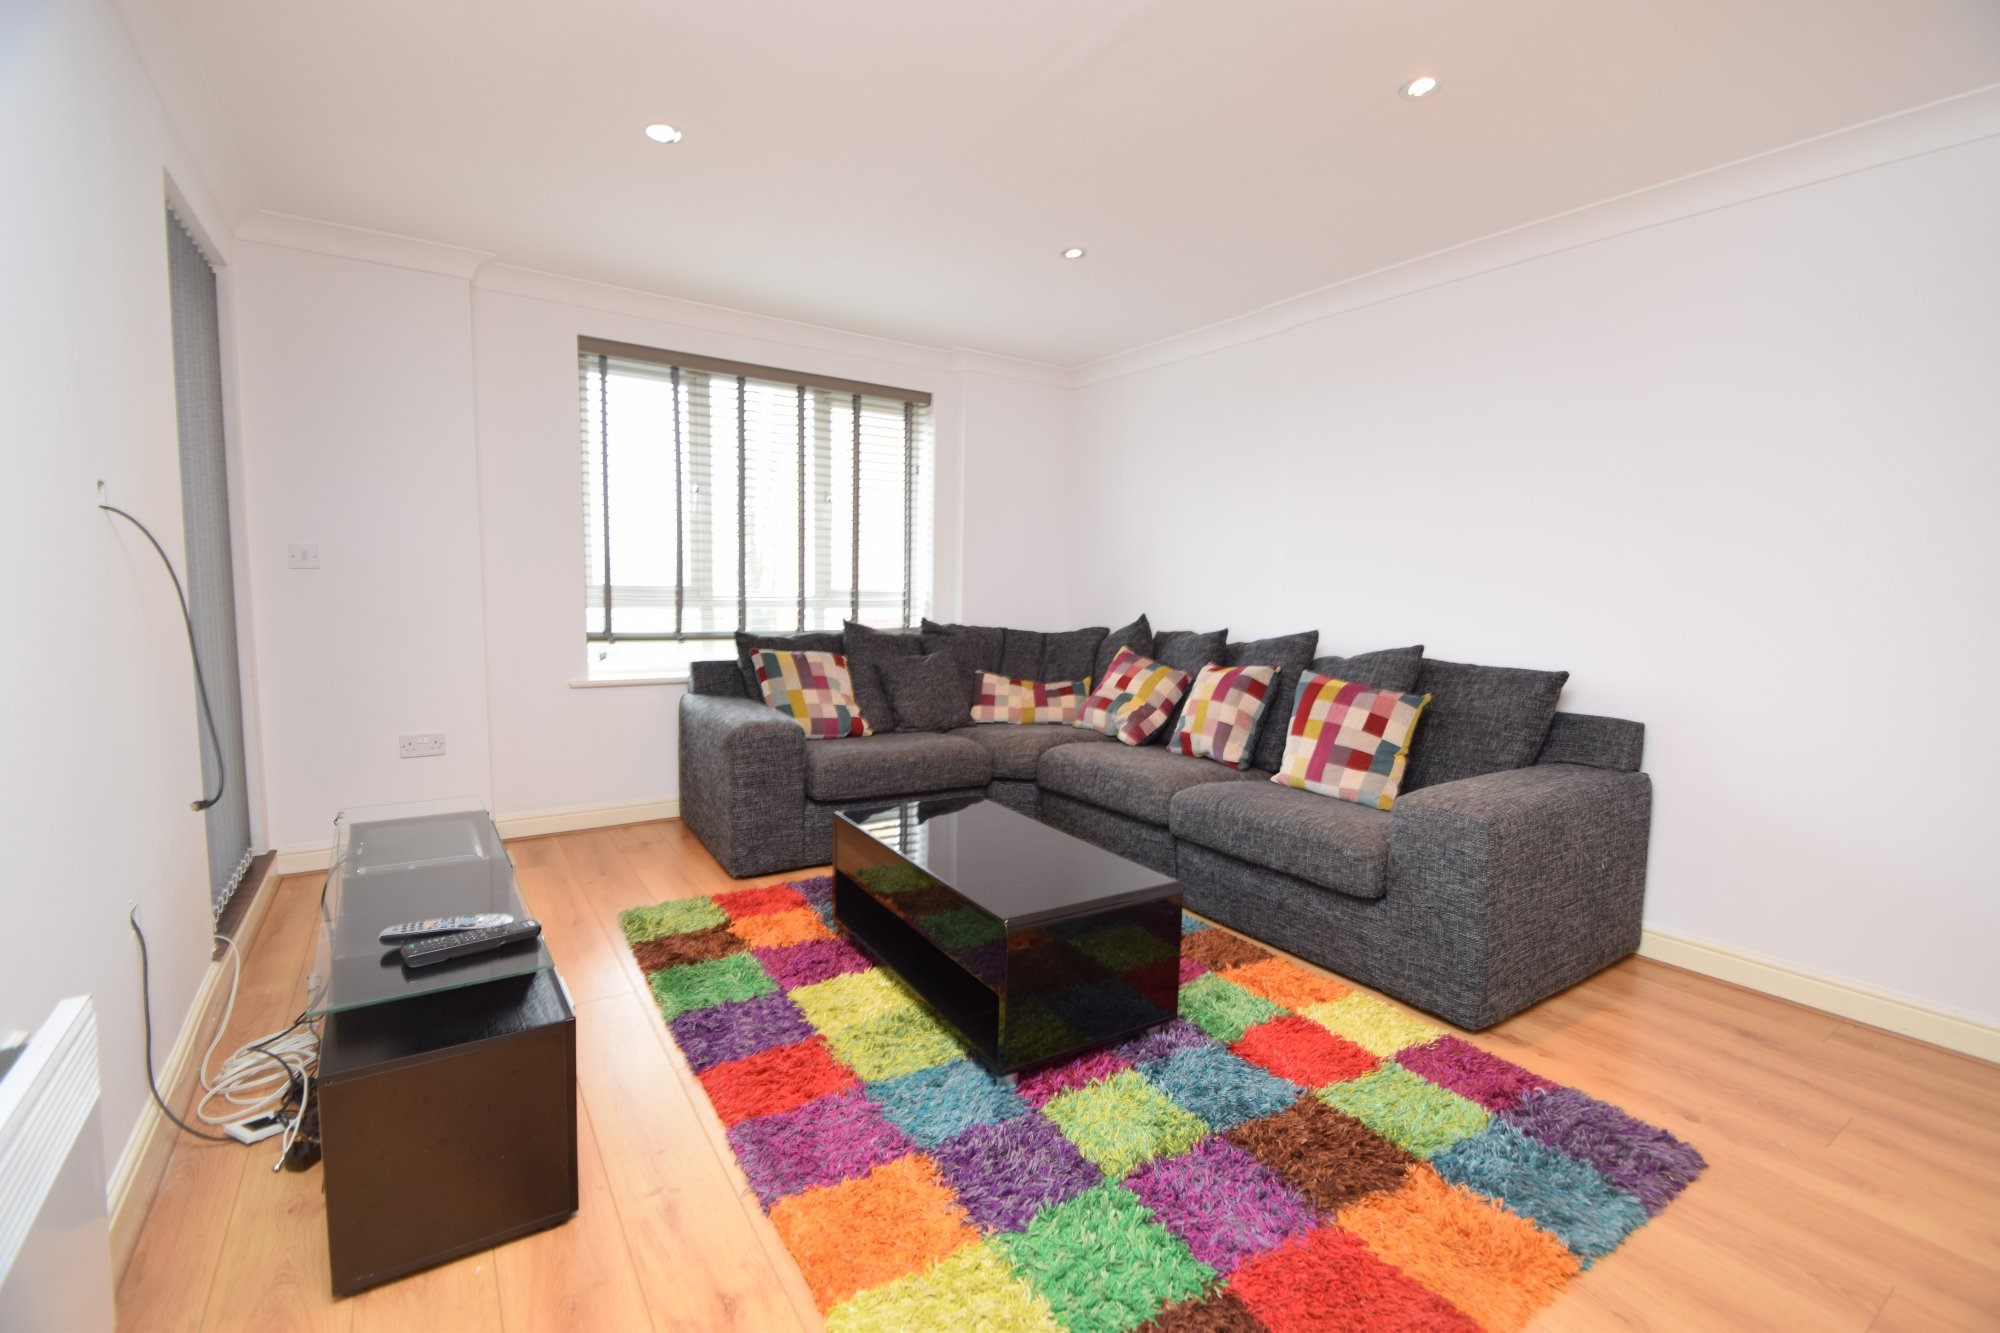 Is 747 A Good Credit Score >> 2 bedroom flat to rent, Glebelands Close, North Finchley N, London, N12 0AE